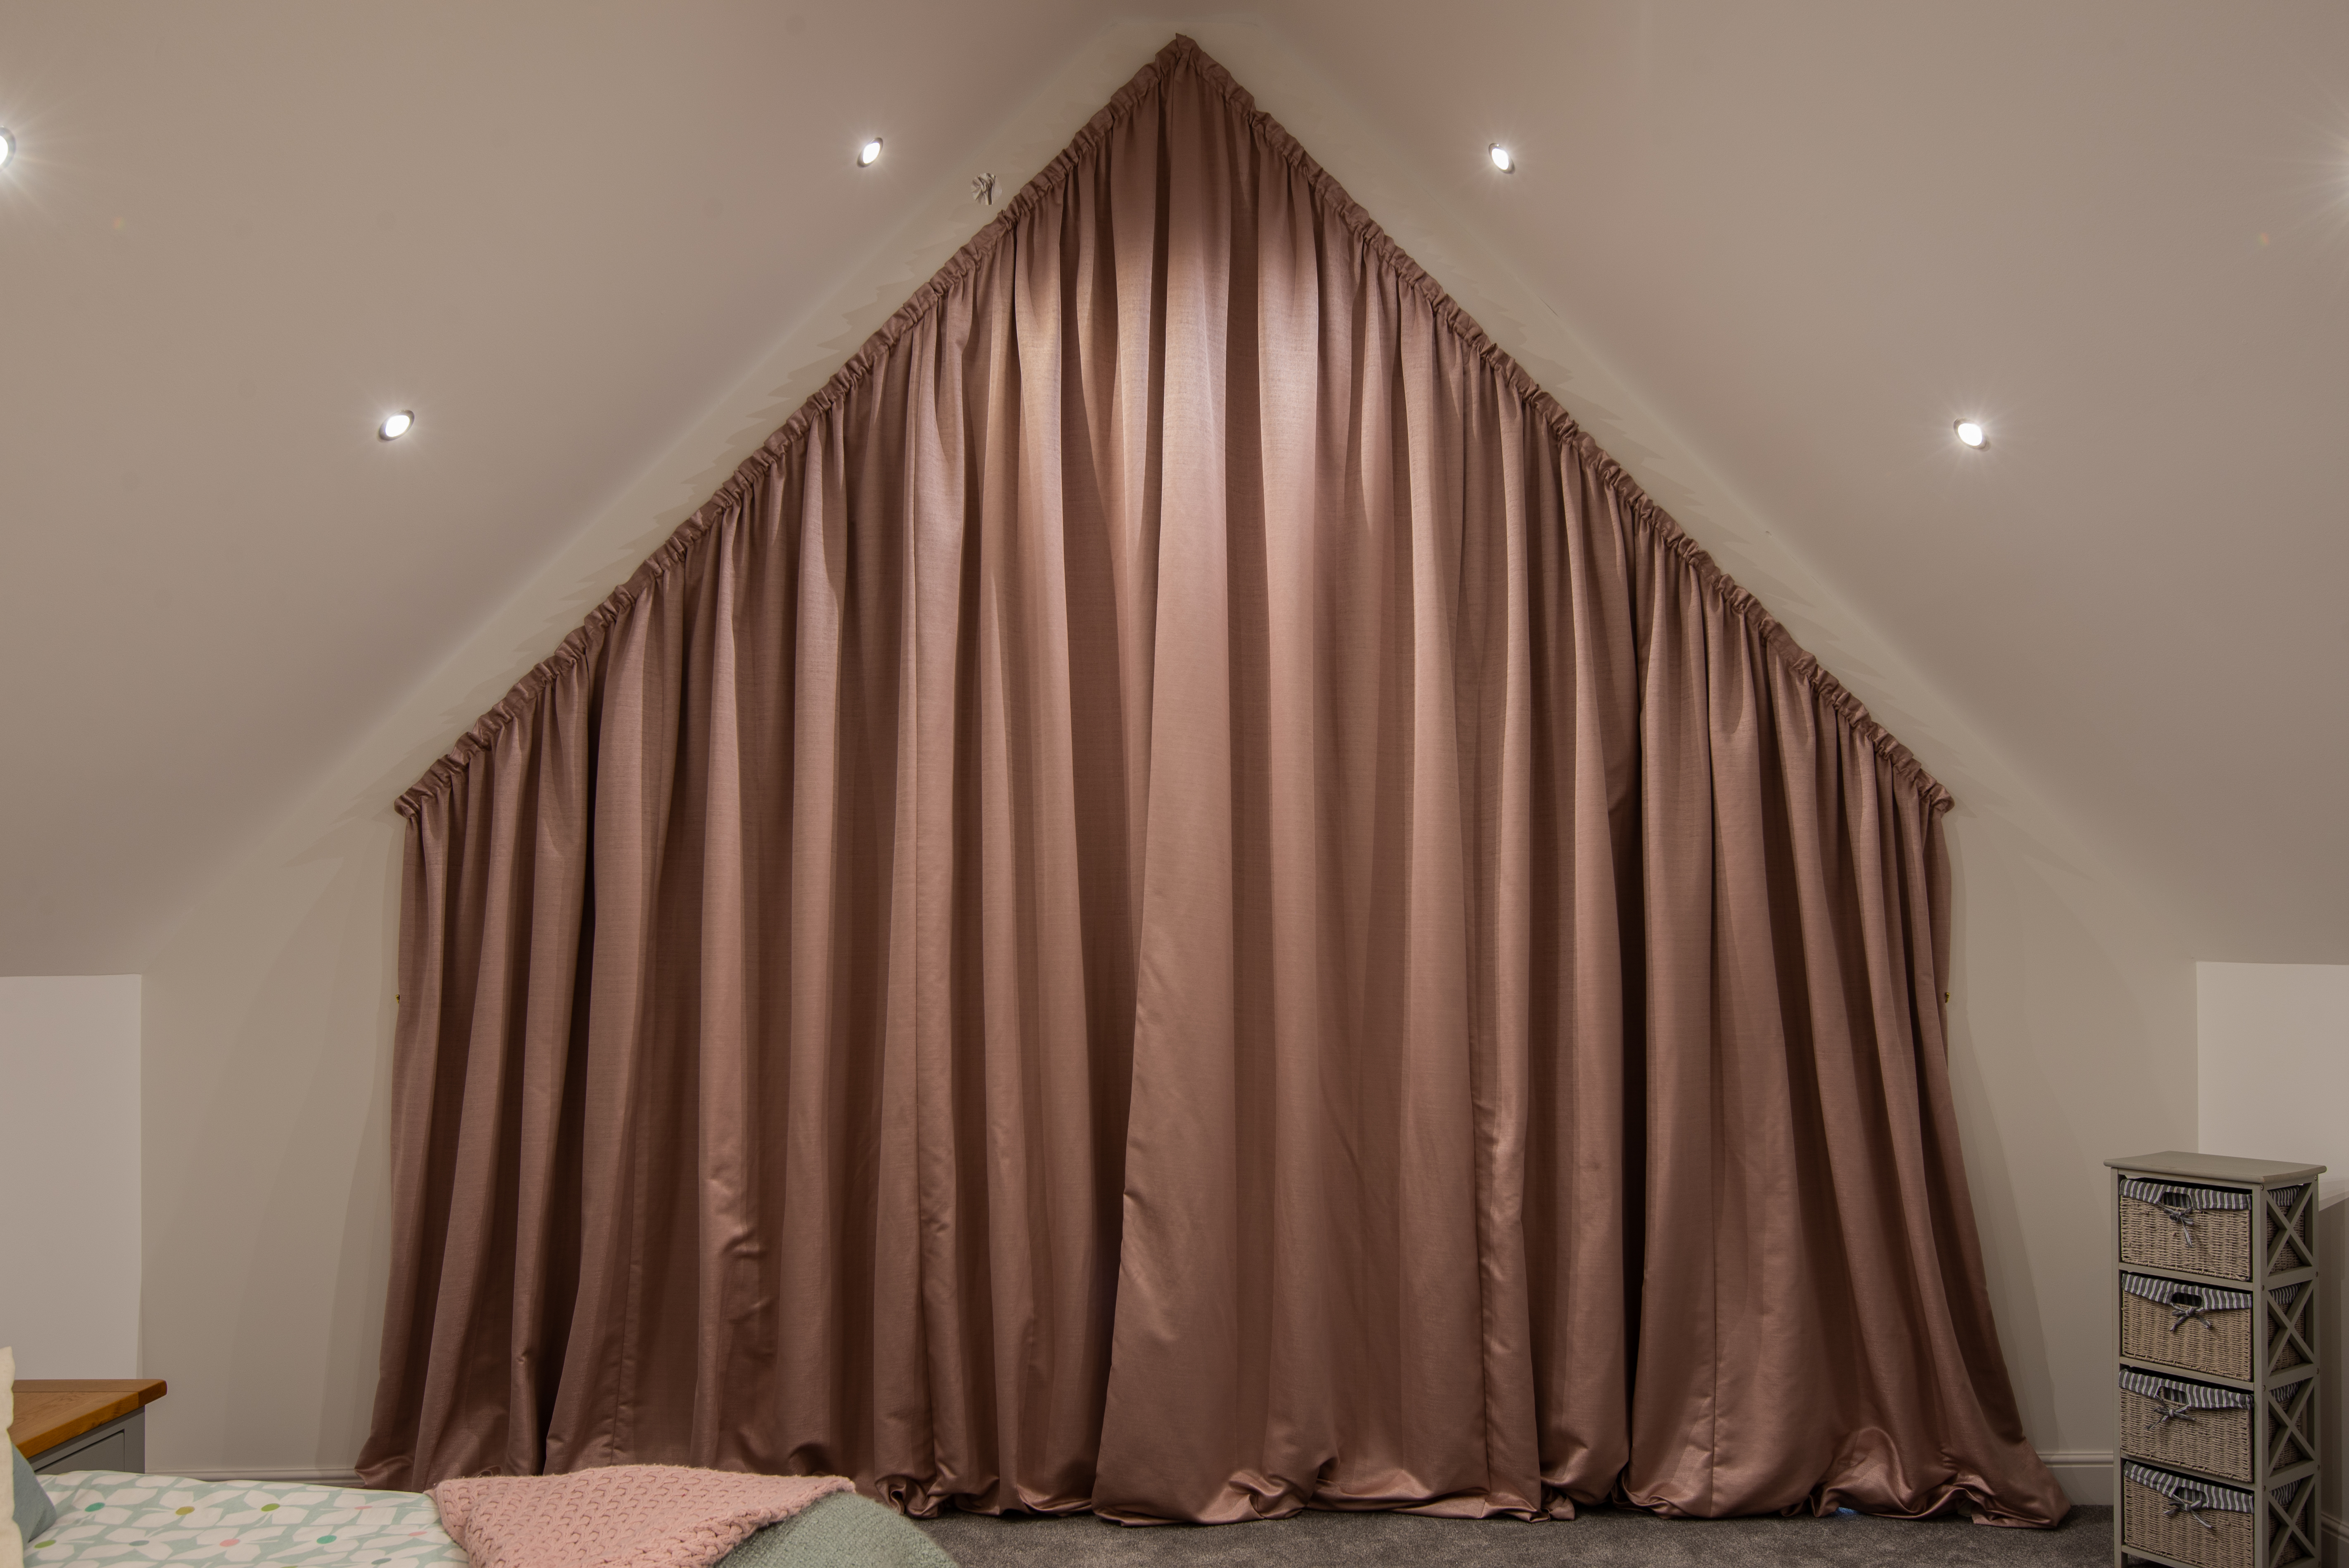 Apex curtains in plain fabric